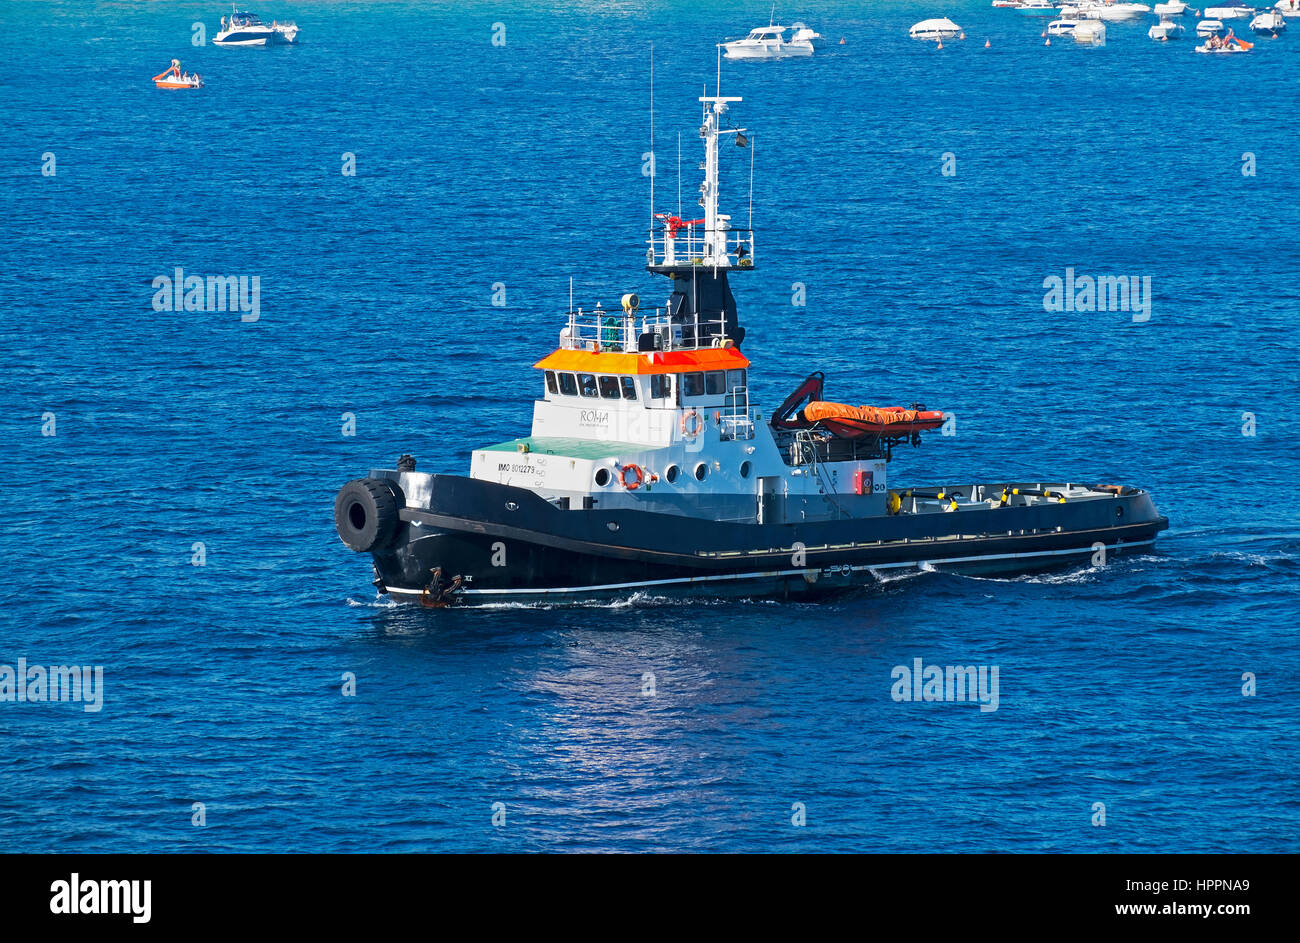 a tug boat in the mediterranean sea near the town of palamos in spain - Stock Image